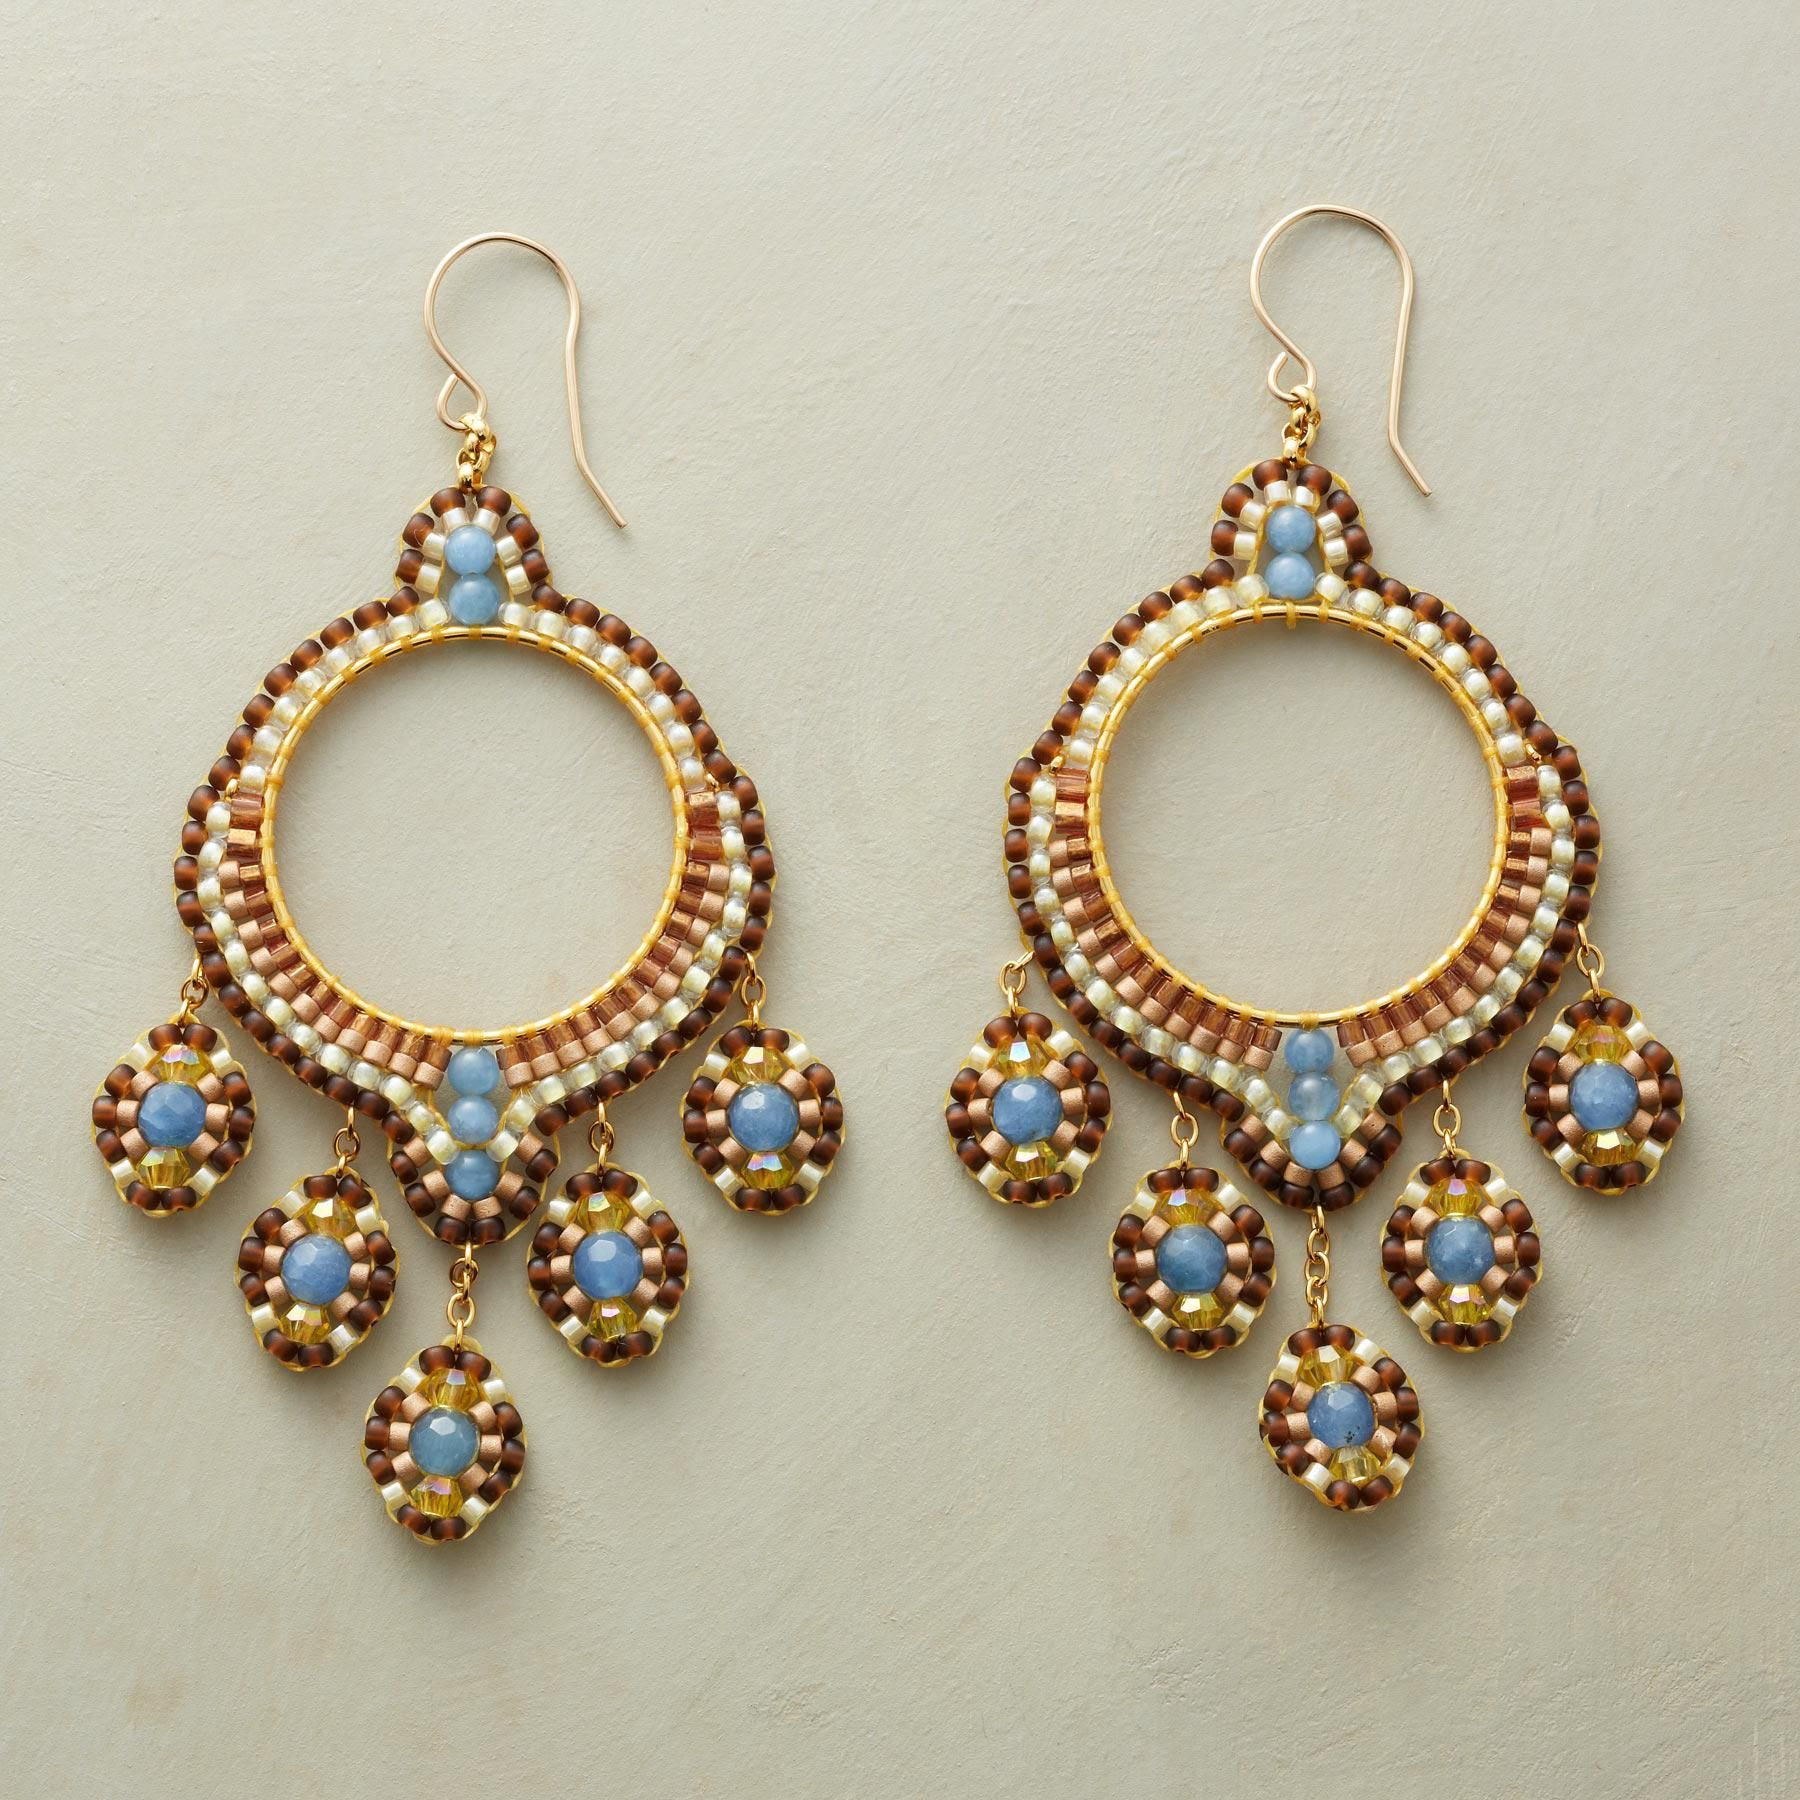 """CYMBALINE HOOPS -- A tapestry of gems is handworked in blue quartz, citrine and and tiny Japanese miyuki beads into voluptuous hoops on 14kt goldfilled earwires. Handcrafted in USA by Miguel Ases. 3-1/4""""L."""